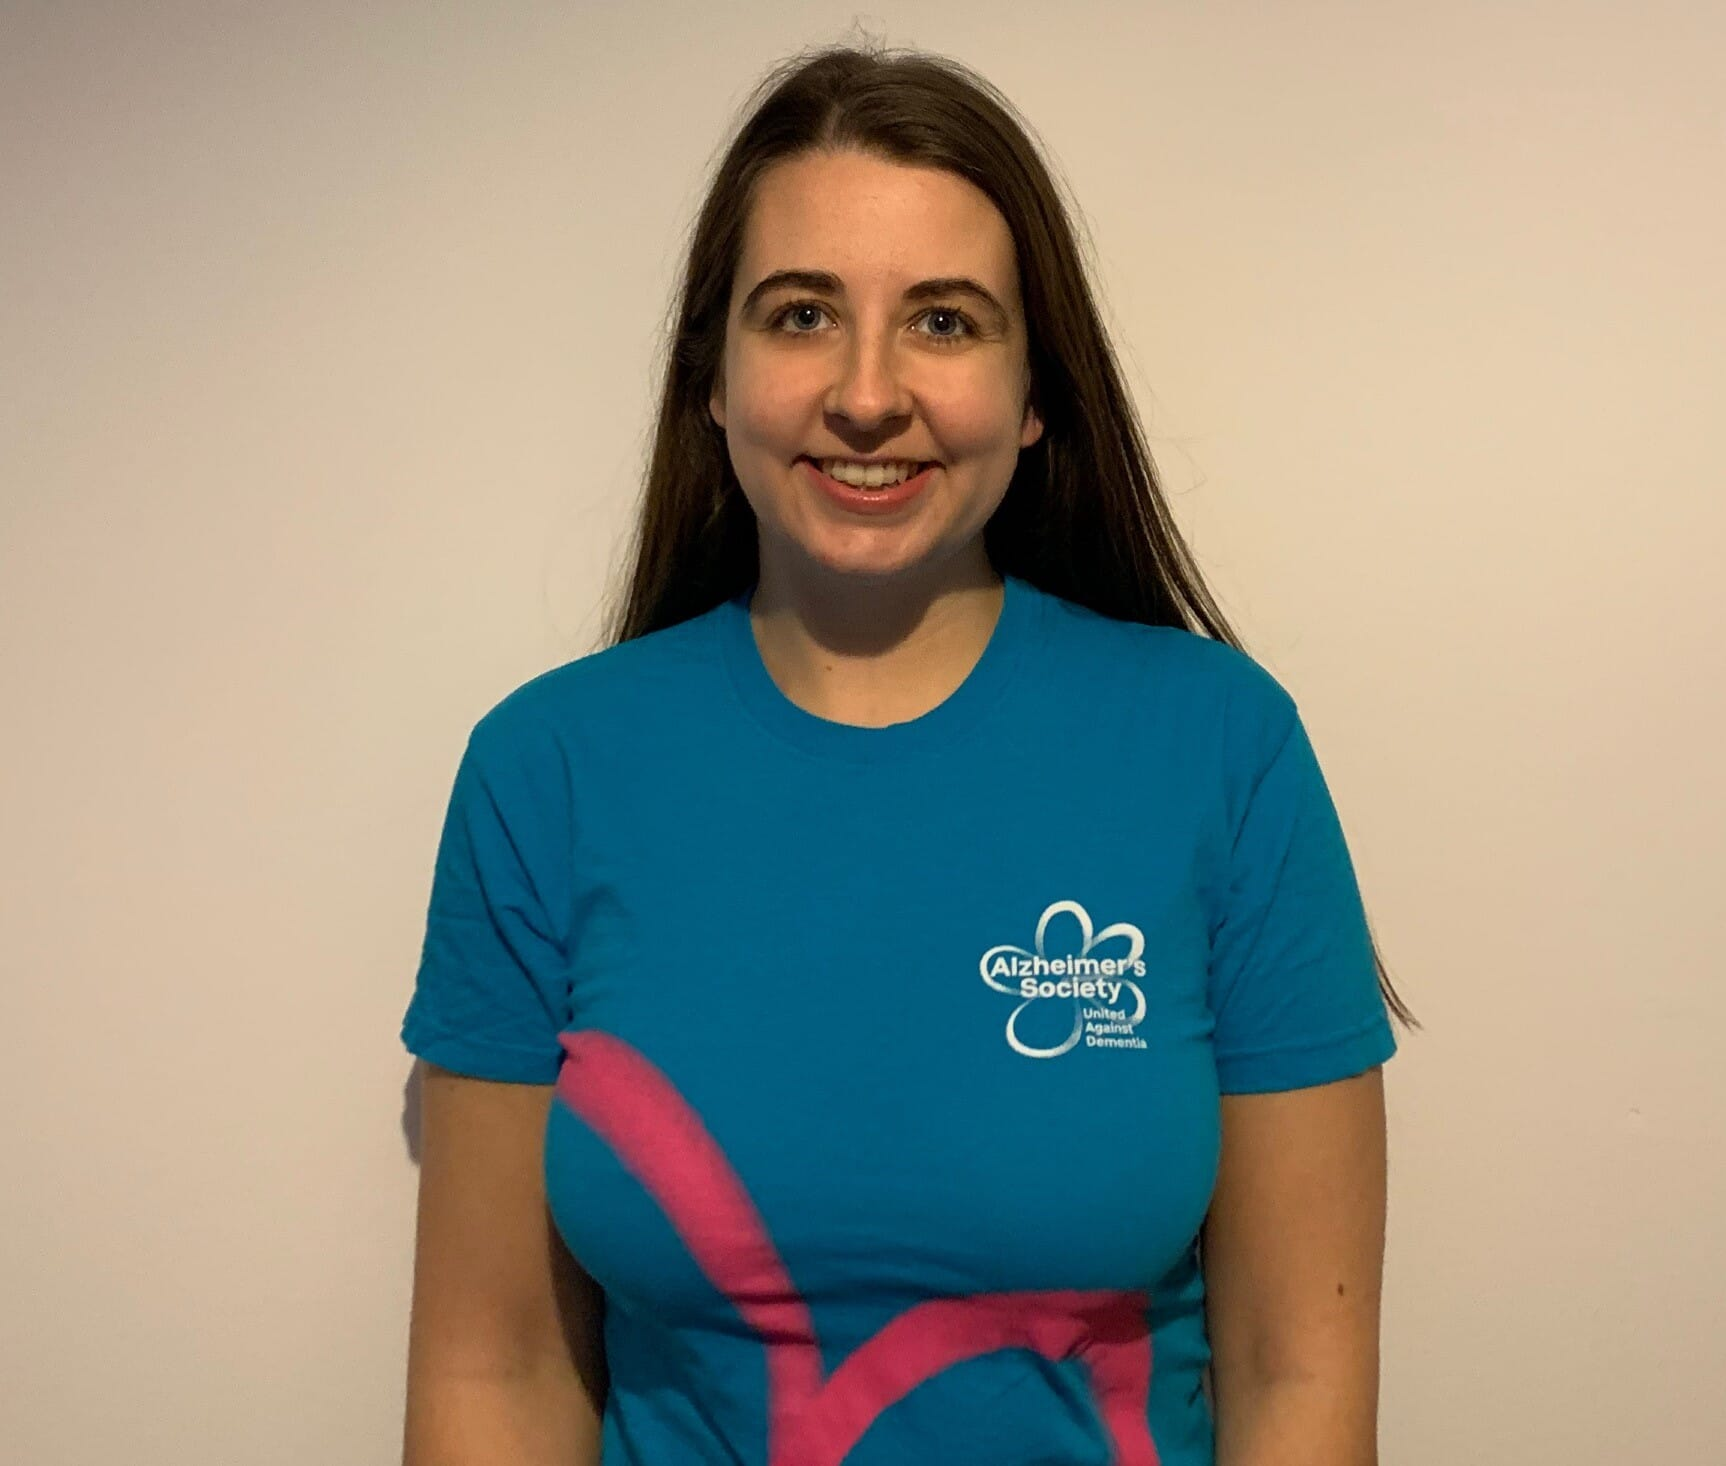 Emily Eveleigh, Special Events Manager at Alzheimer's Society